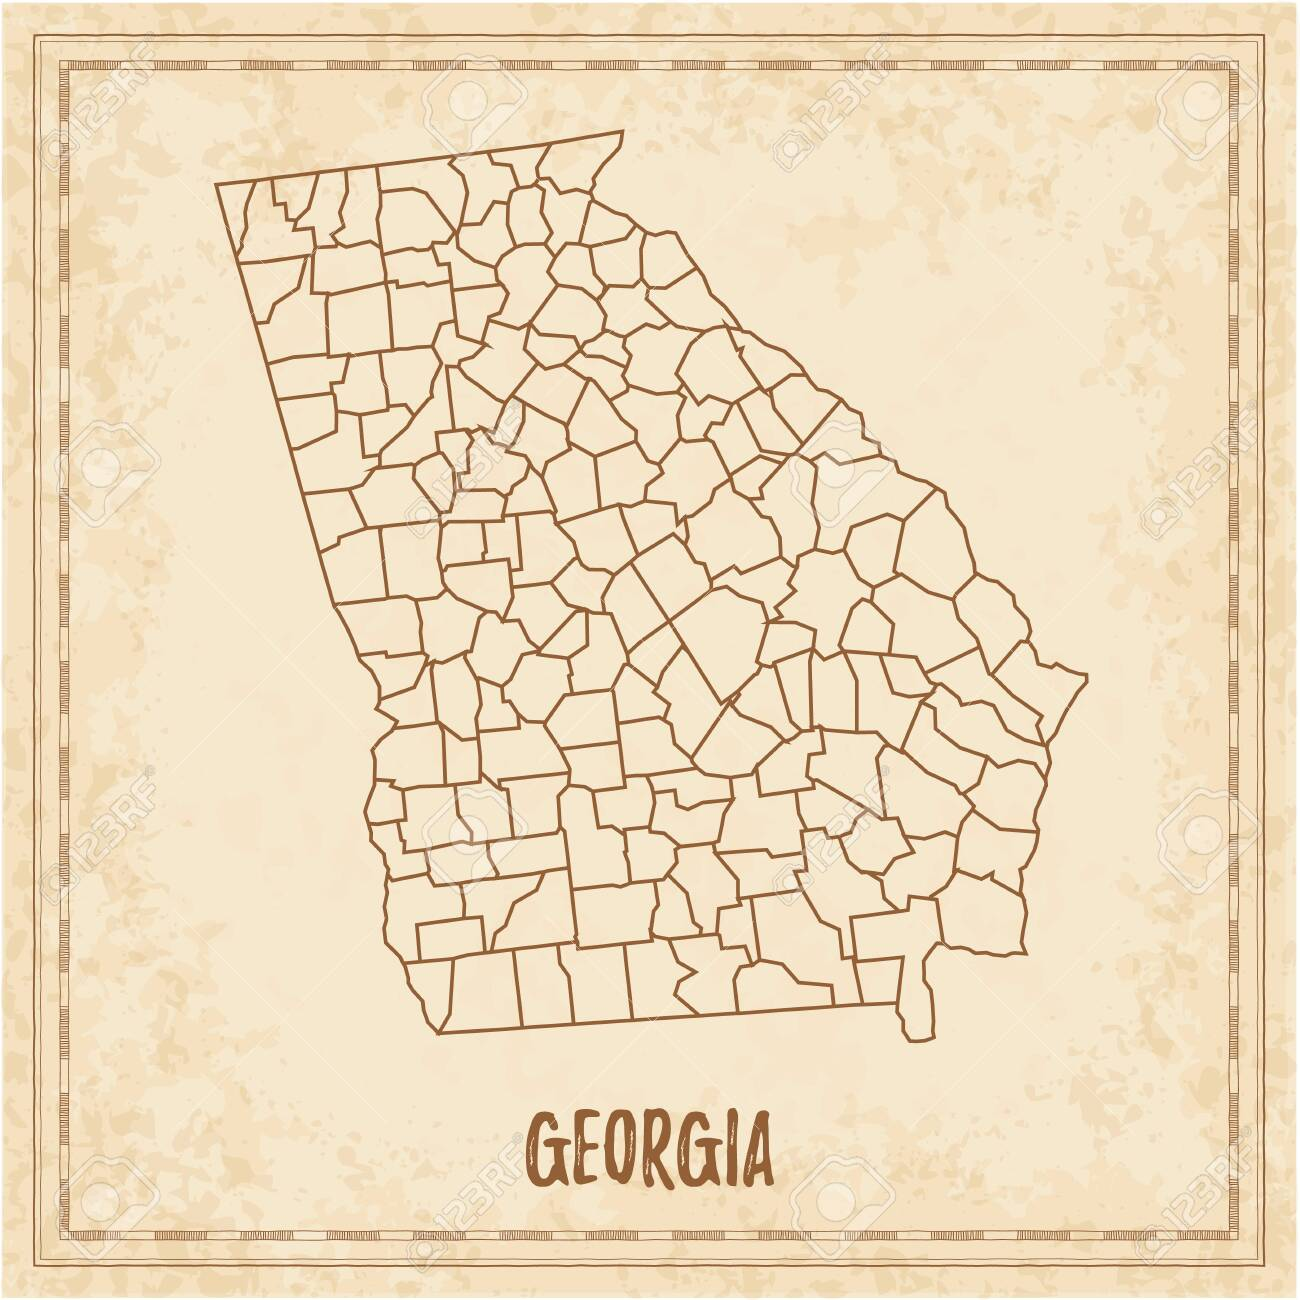 State Of Georgia Map With Counties.Pirate Map Of Georgia Blank Vector Map Of The Us State With